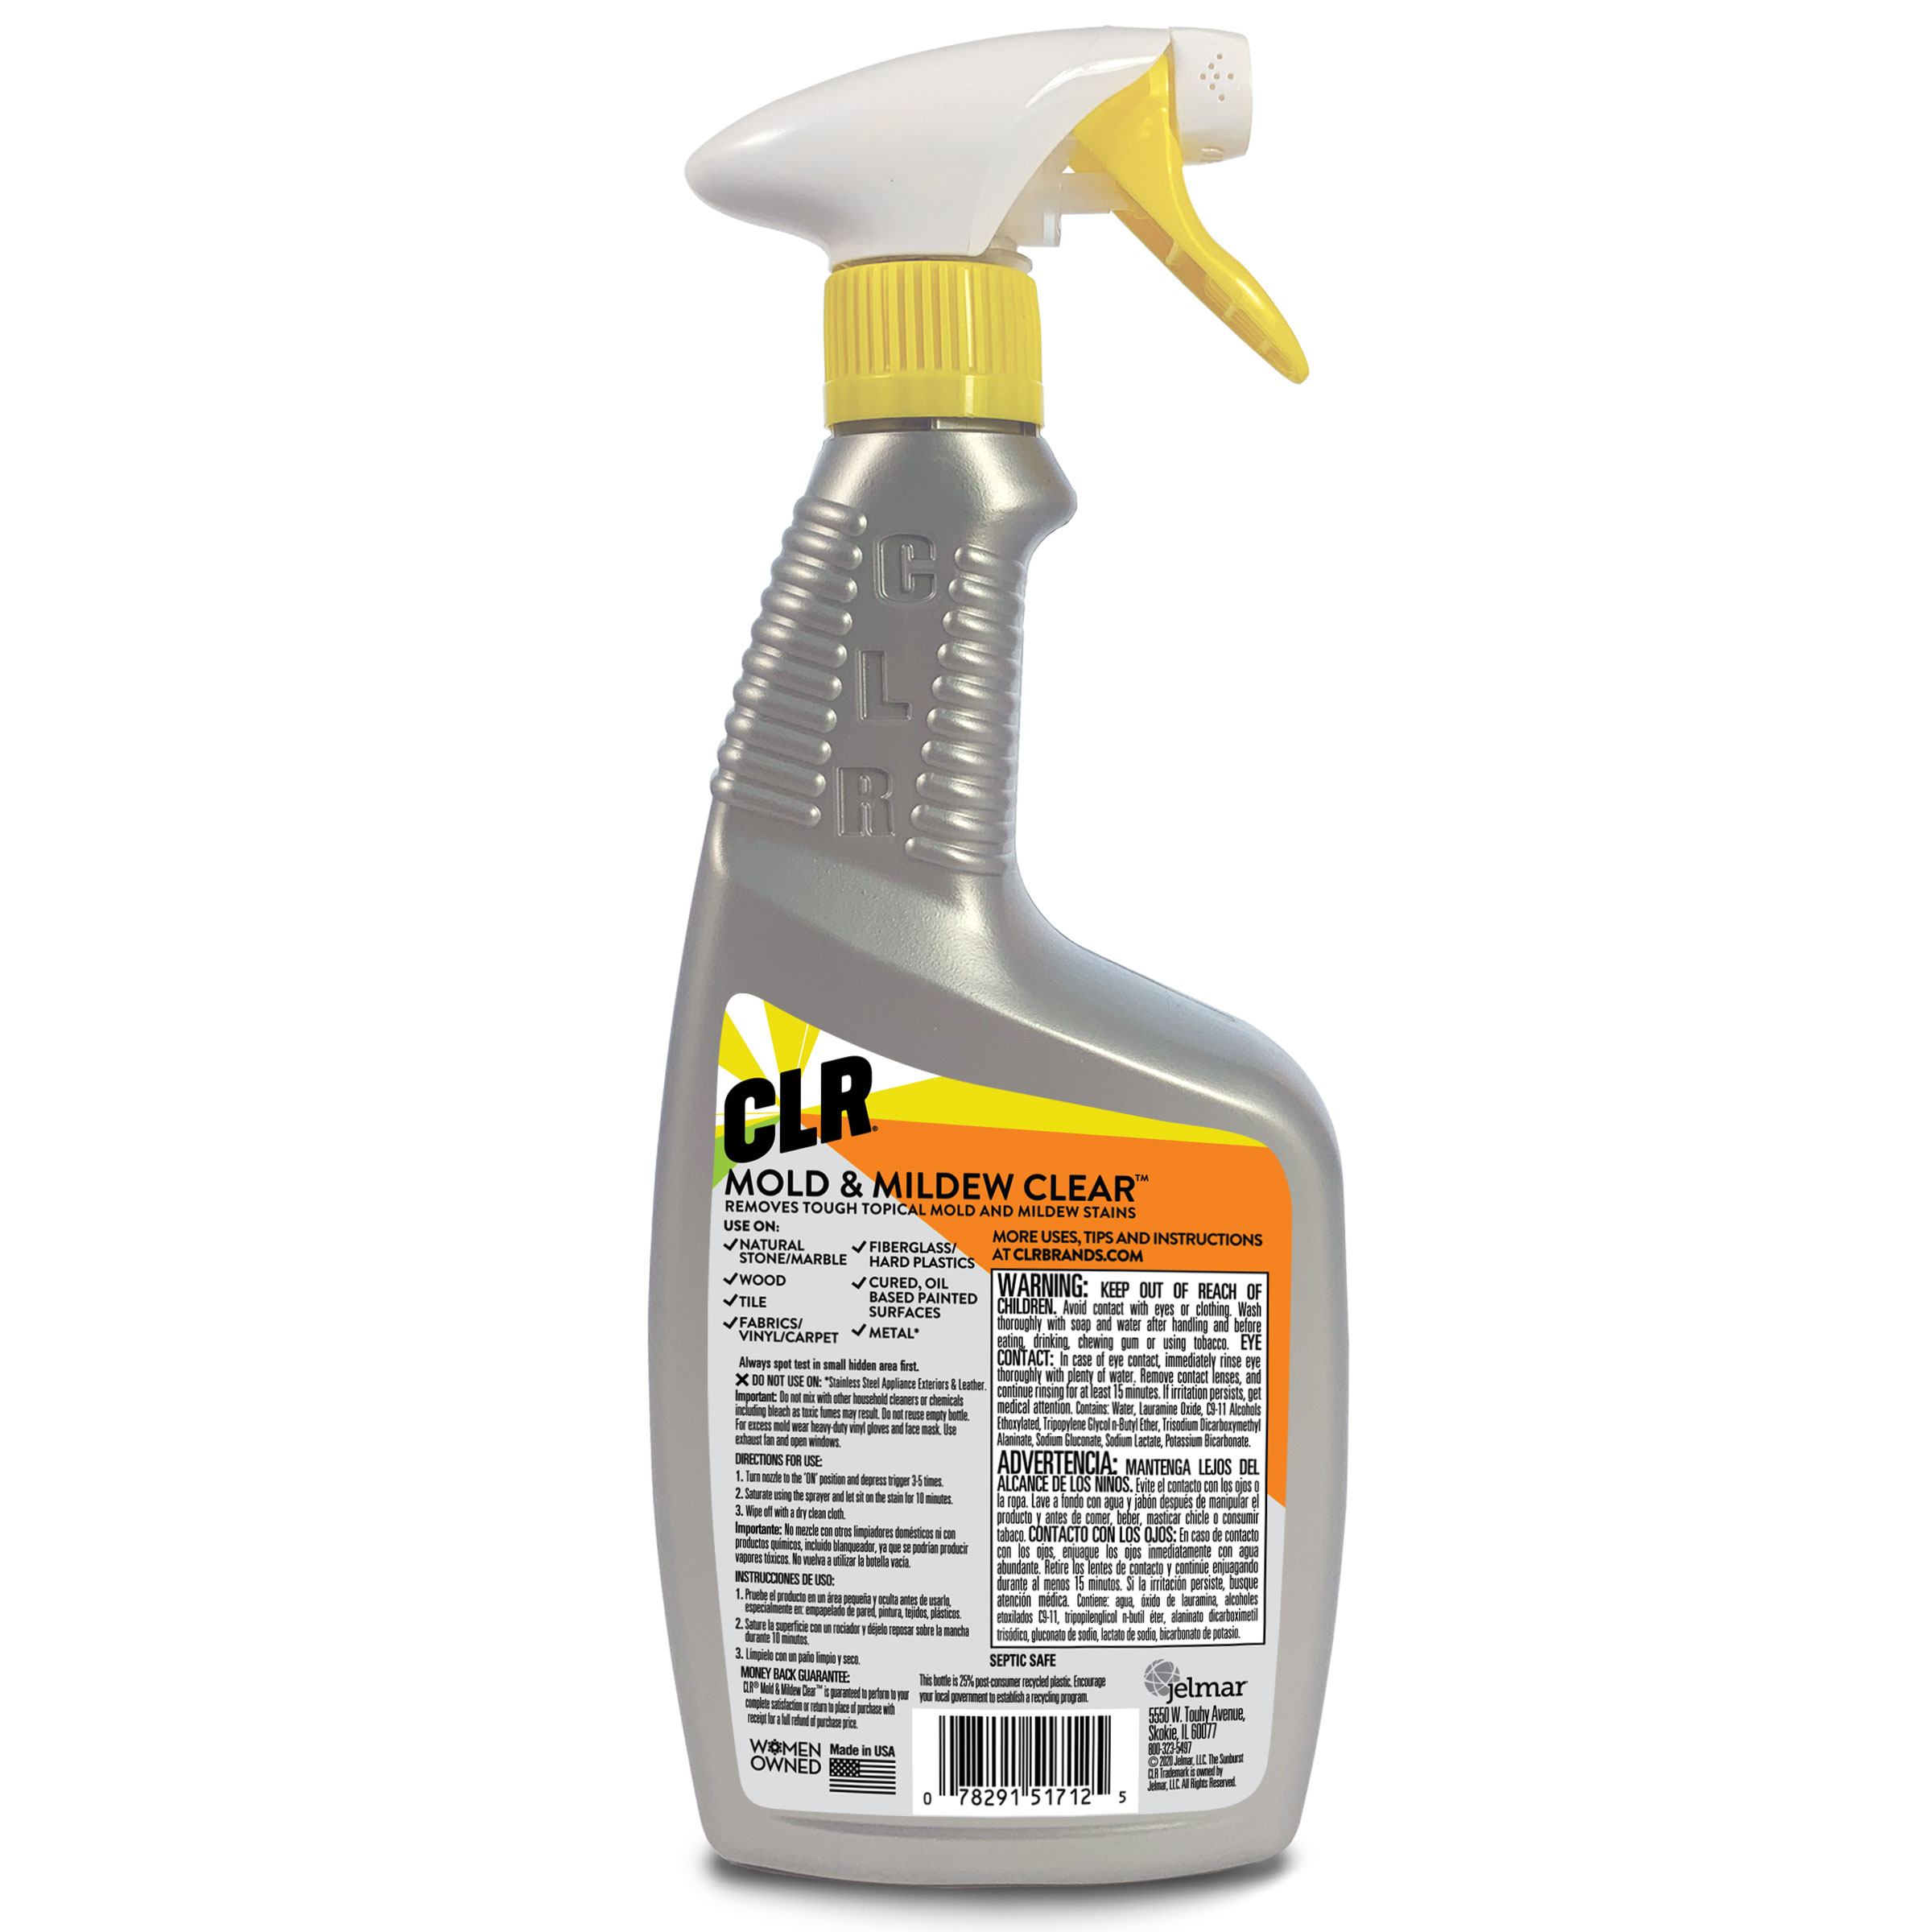 Walmart Grocery Clr Mold Mildew Clear Bleach Free Foaming Stain Remover Spray 32 Fl Oz